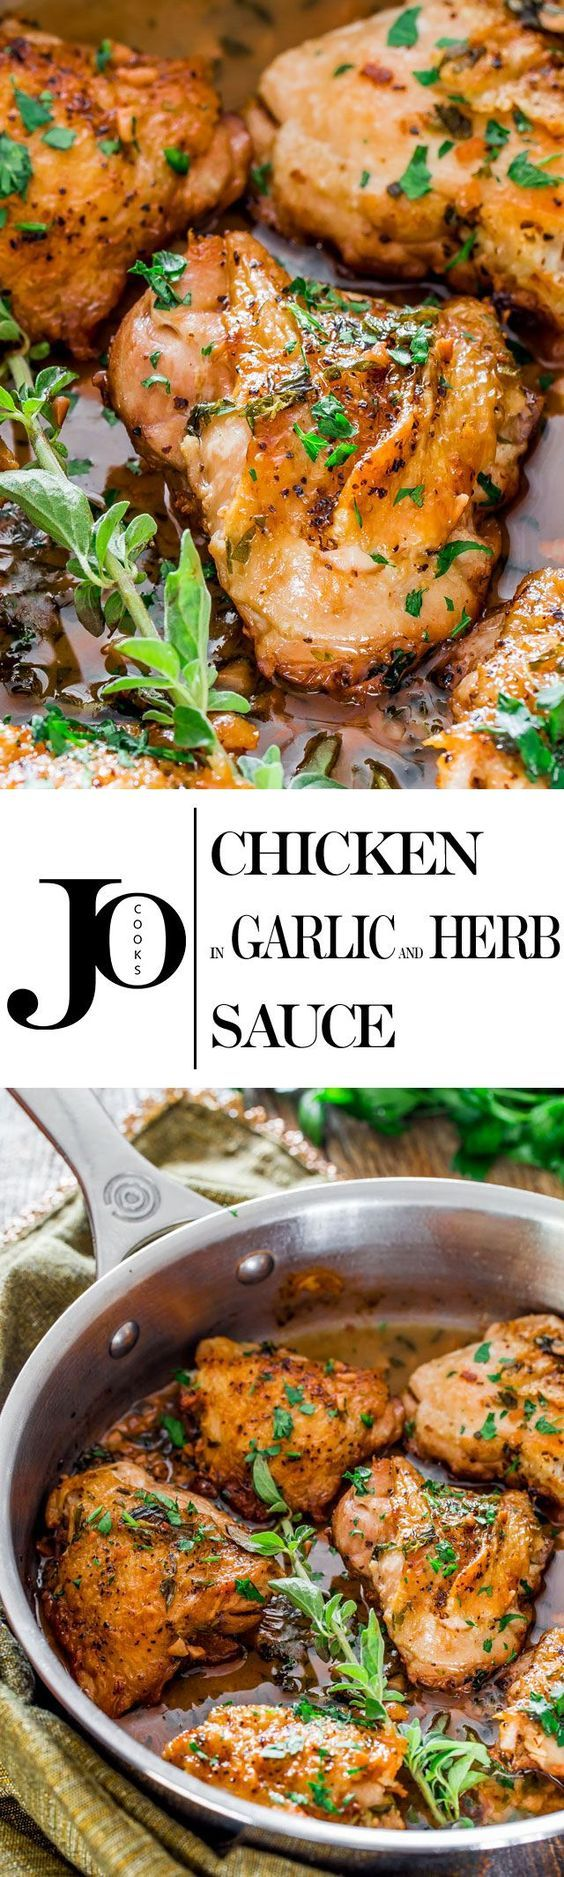 Chicken in Garlic and Herb Sauce - incredibly juicy chicken thighs in a simple…